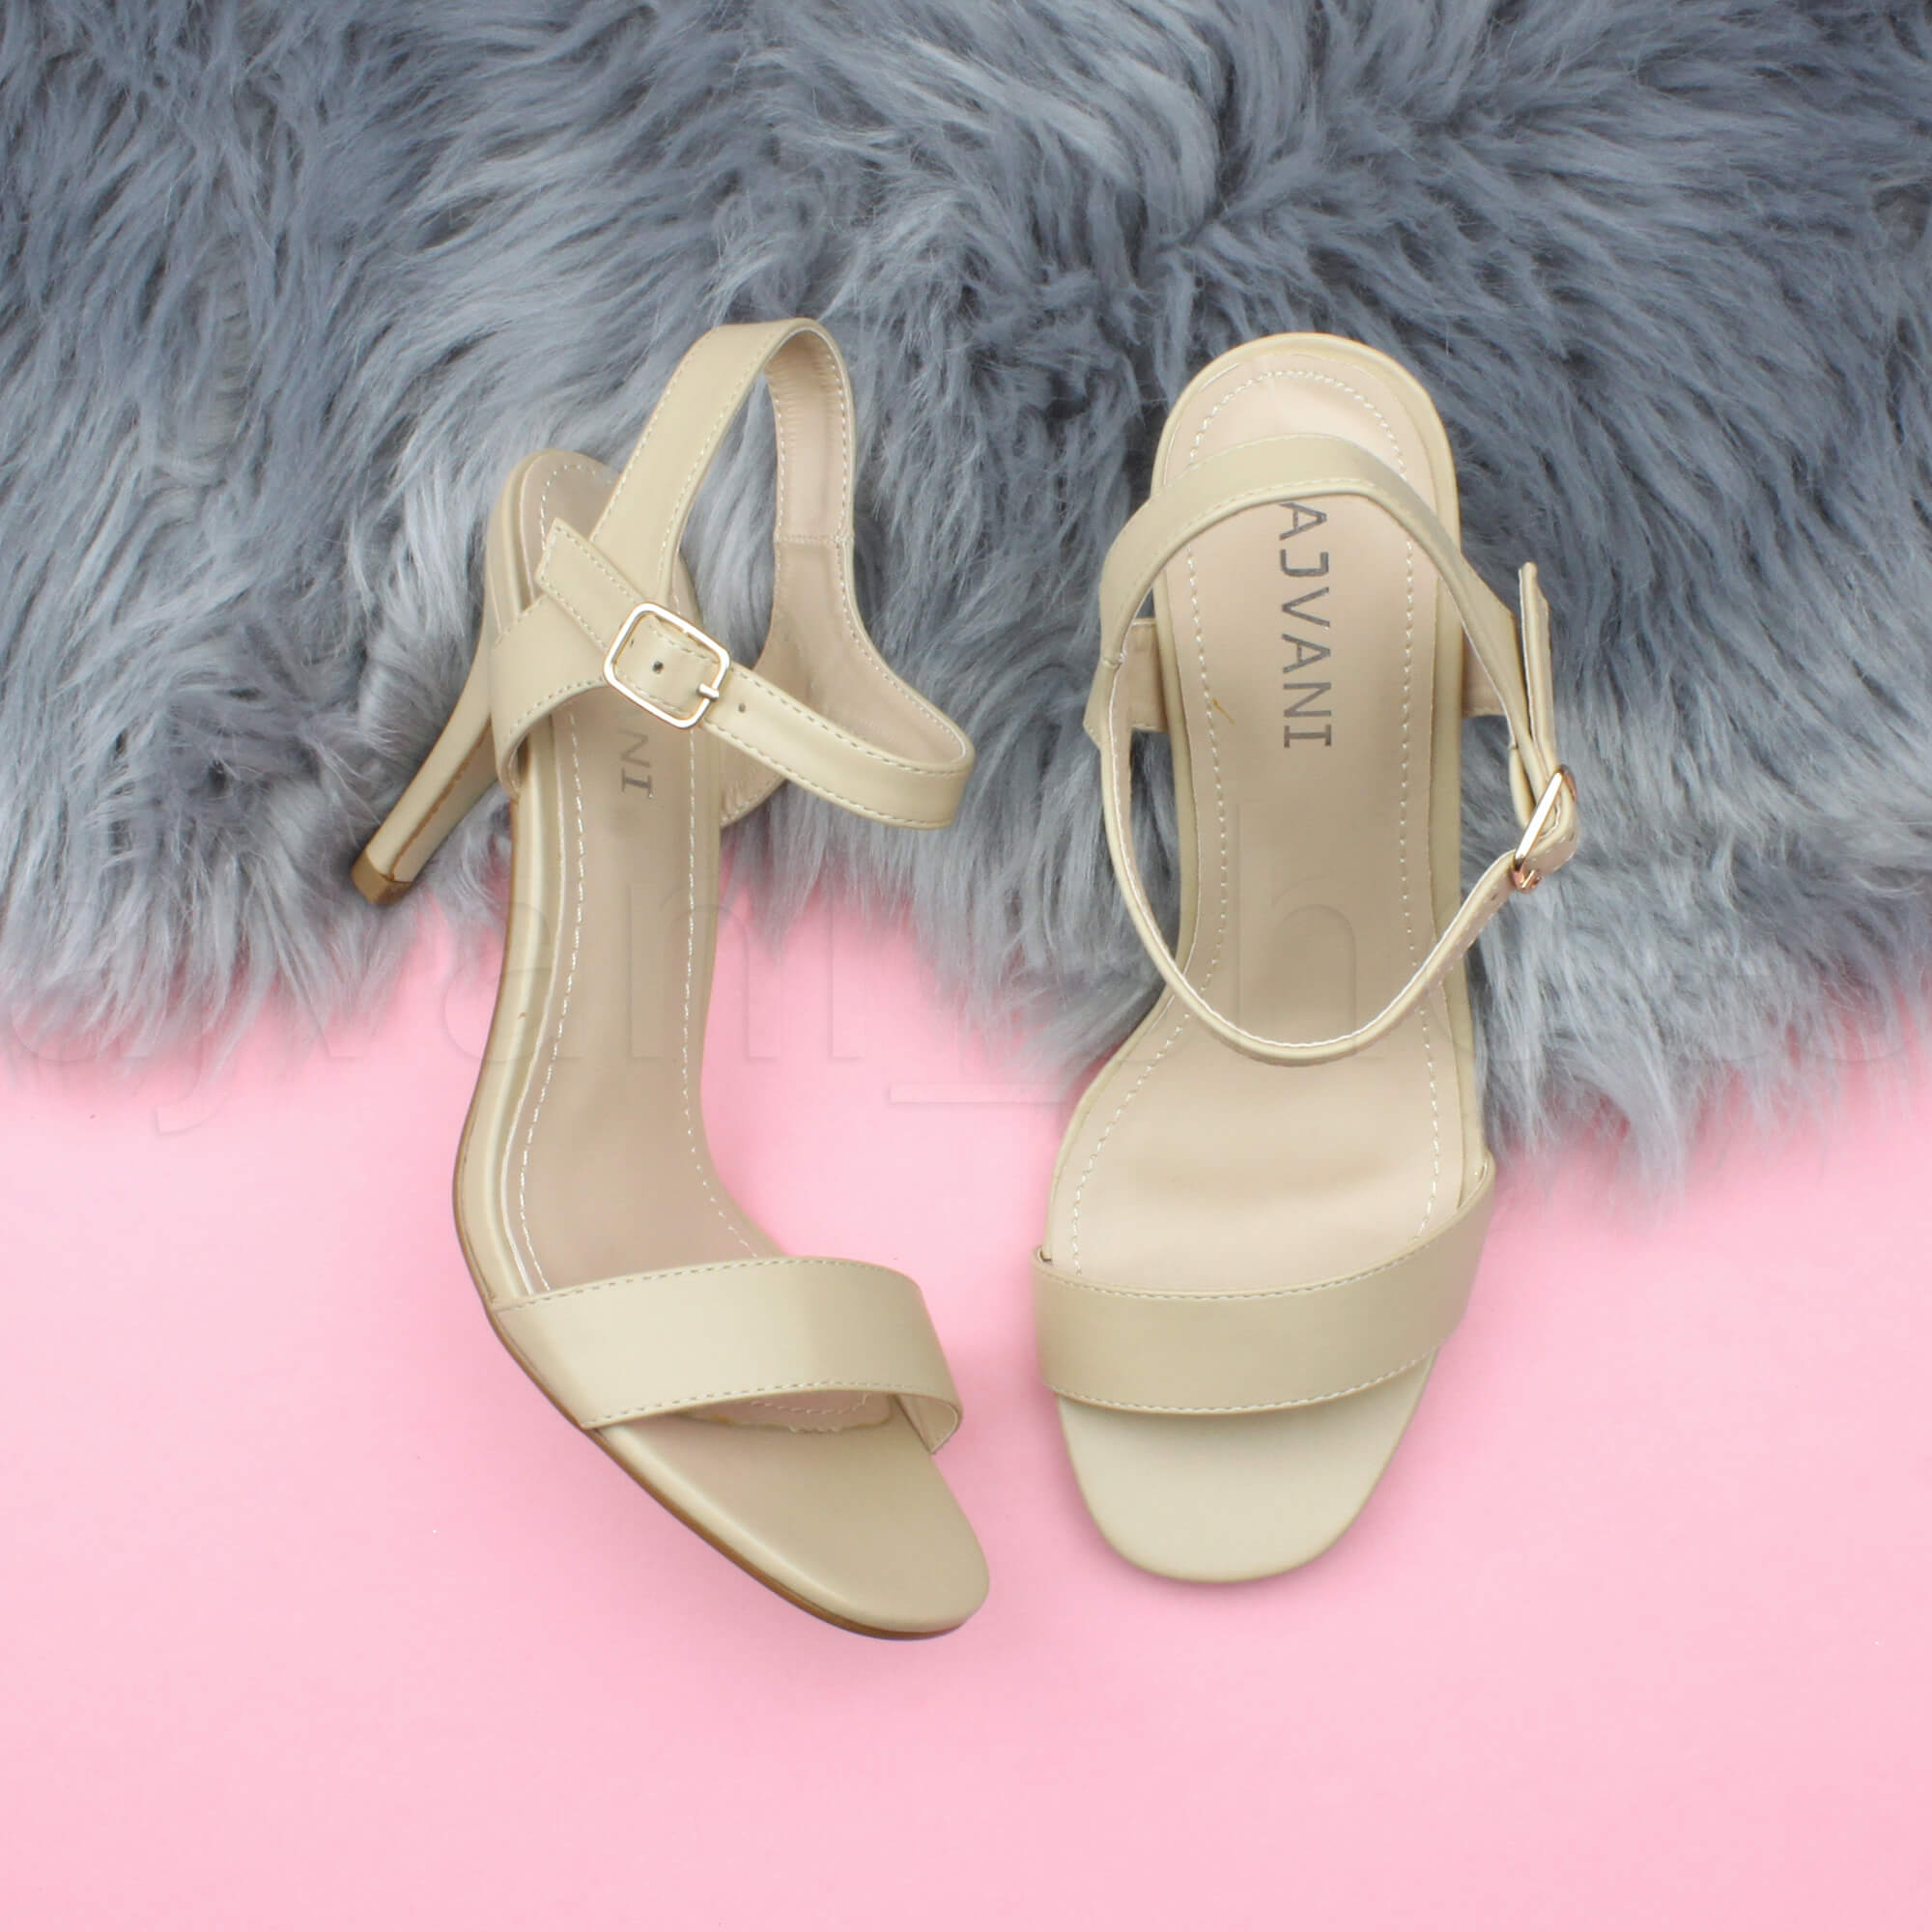 WOMENS-LADIES-HIGH-HEEL-BUCKLE-STRAPPY-BASIC-BARELY-THERE-SANDALS-SHOES-SIZE thumbnail 96